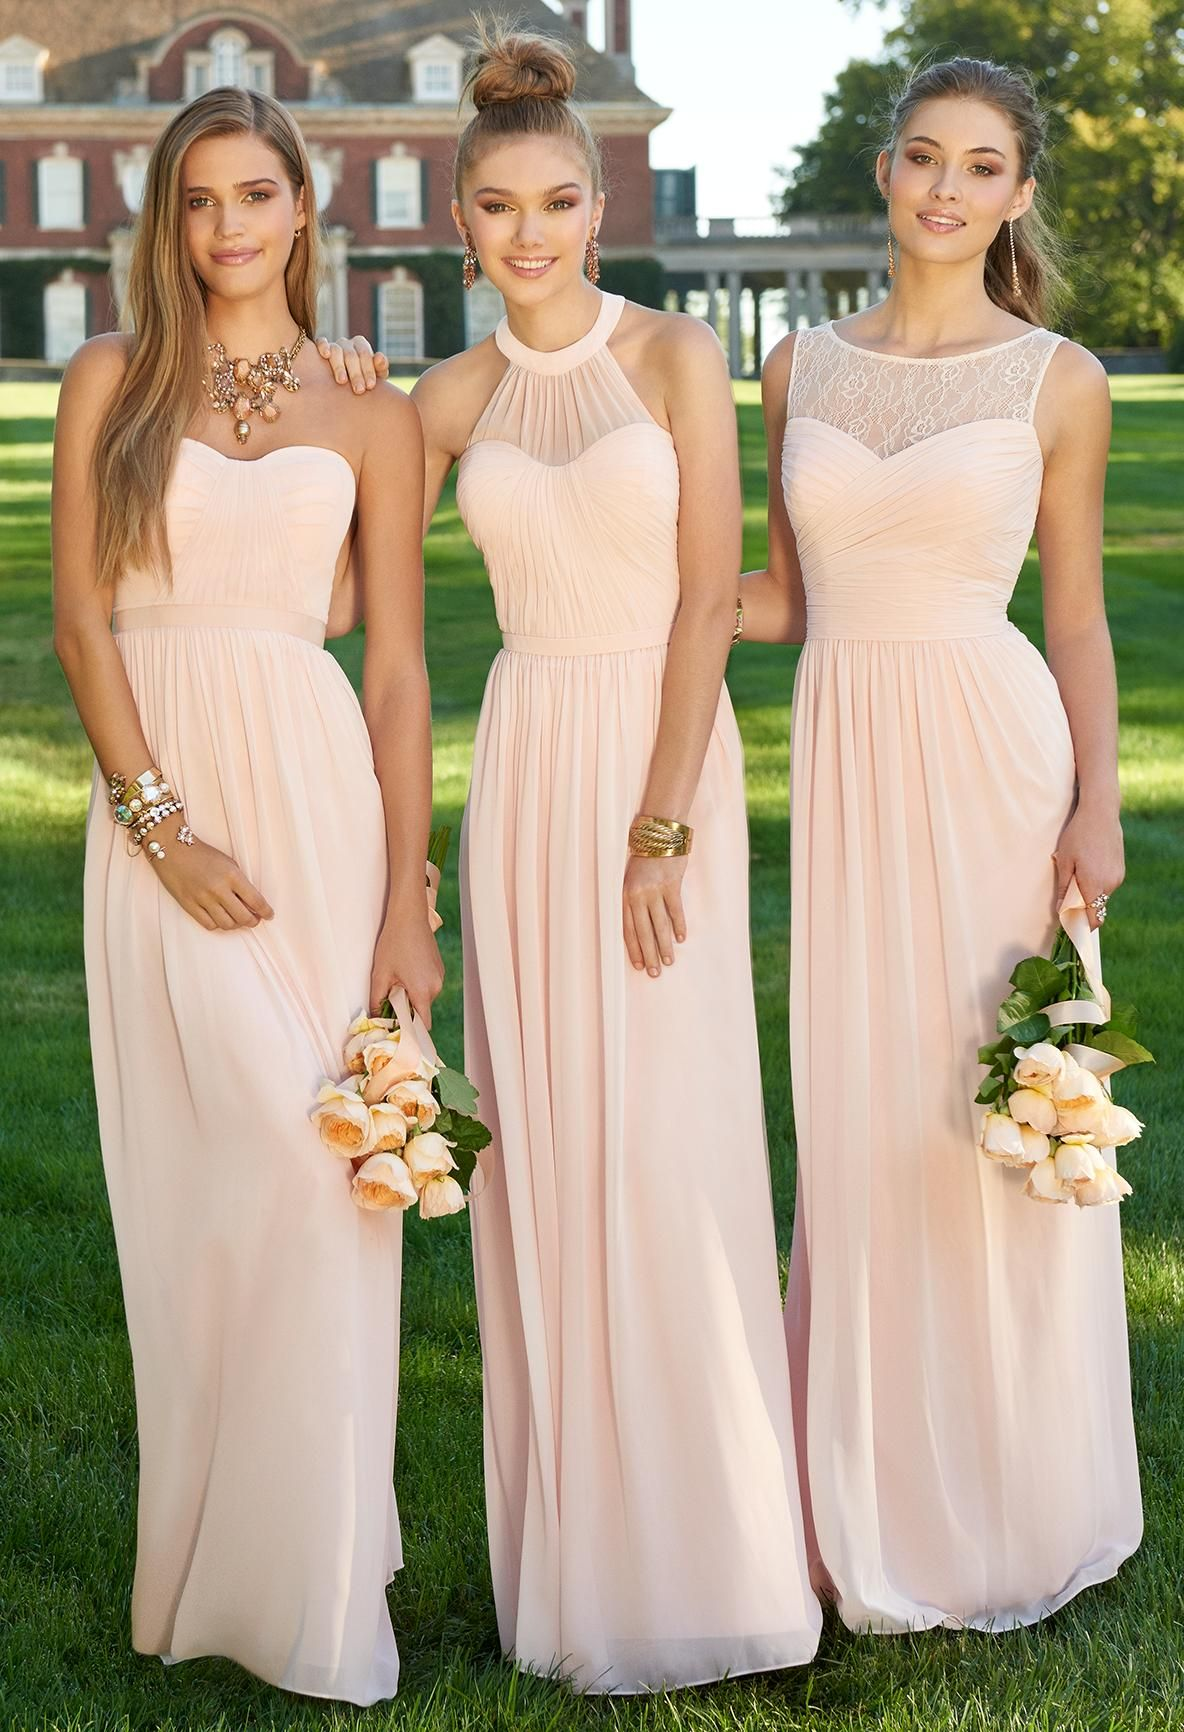 7d9ee4cee8 Lace Illusion Neckline Dress in 2019 | Boda Civil | Bridesmaid ...